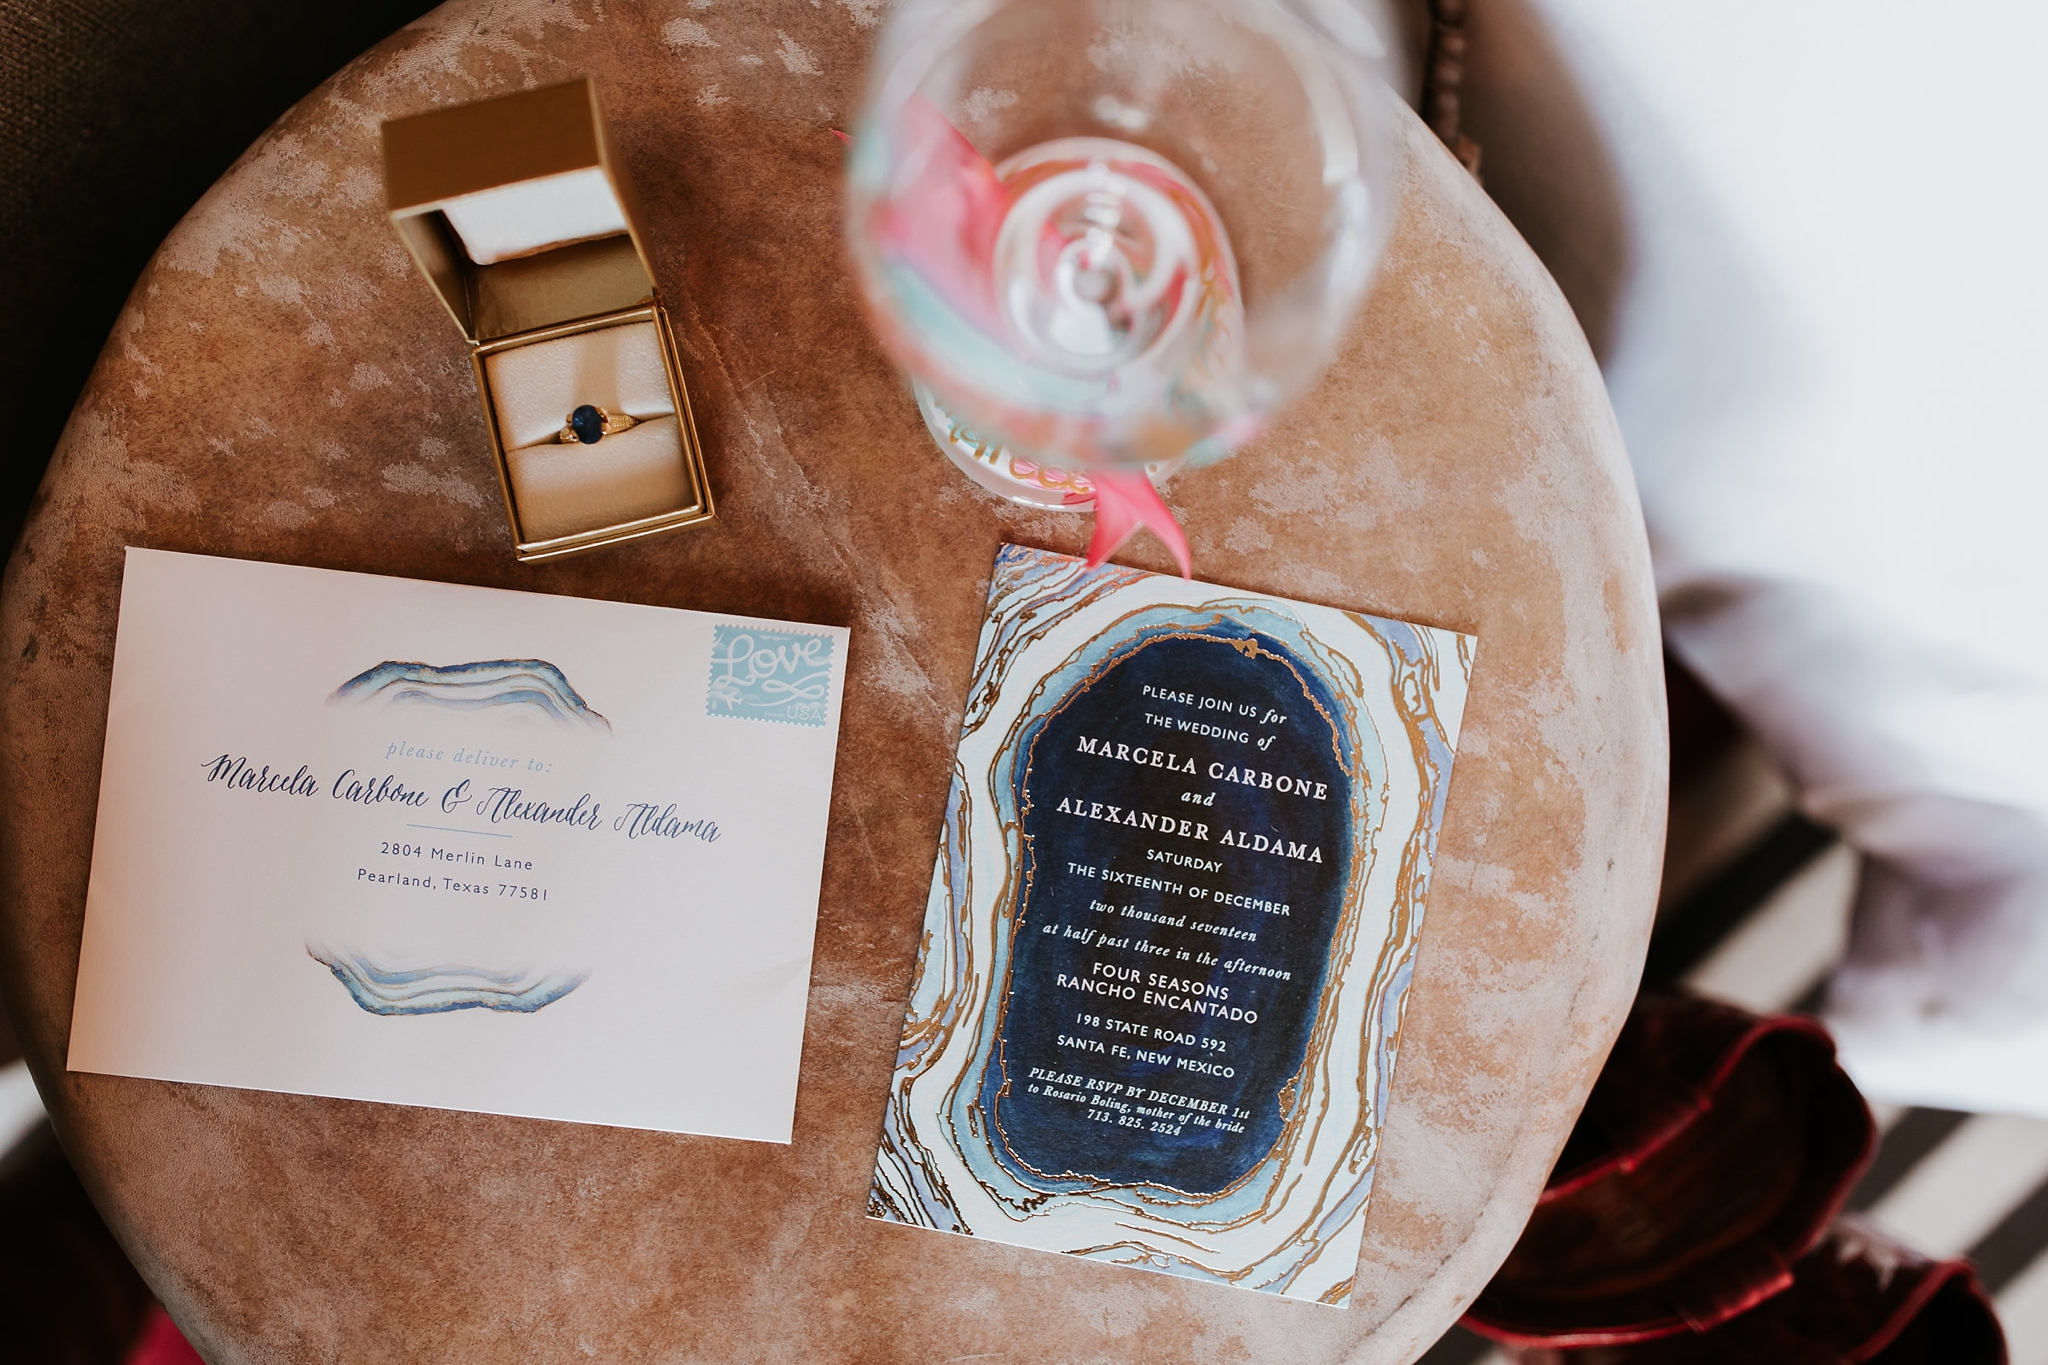 Alicia+lucia+photography+-+albuquerque+wedding+photographer+-+santa+fe+wedding+photography+-+new+mexico+wedding+photographer+-+new+mexico+wedding+-+wedding+invitations+-+invitation+suite+-+wedding+inspo_0045.jpg